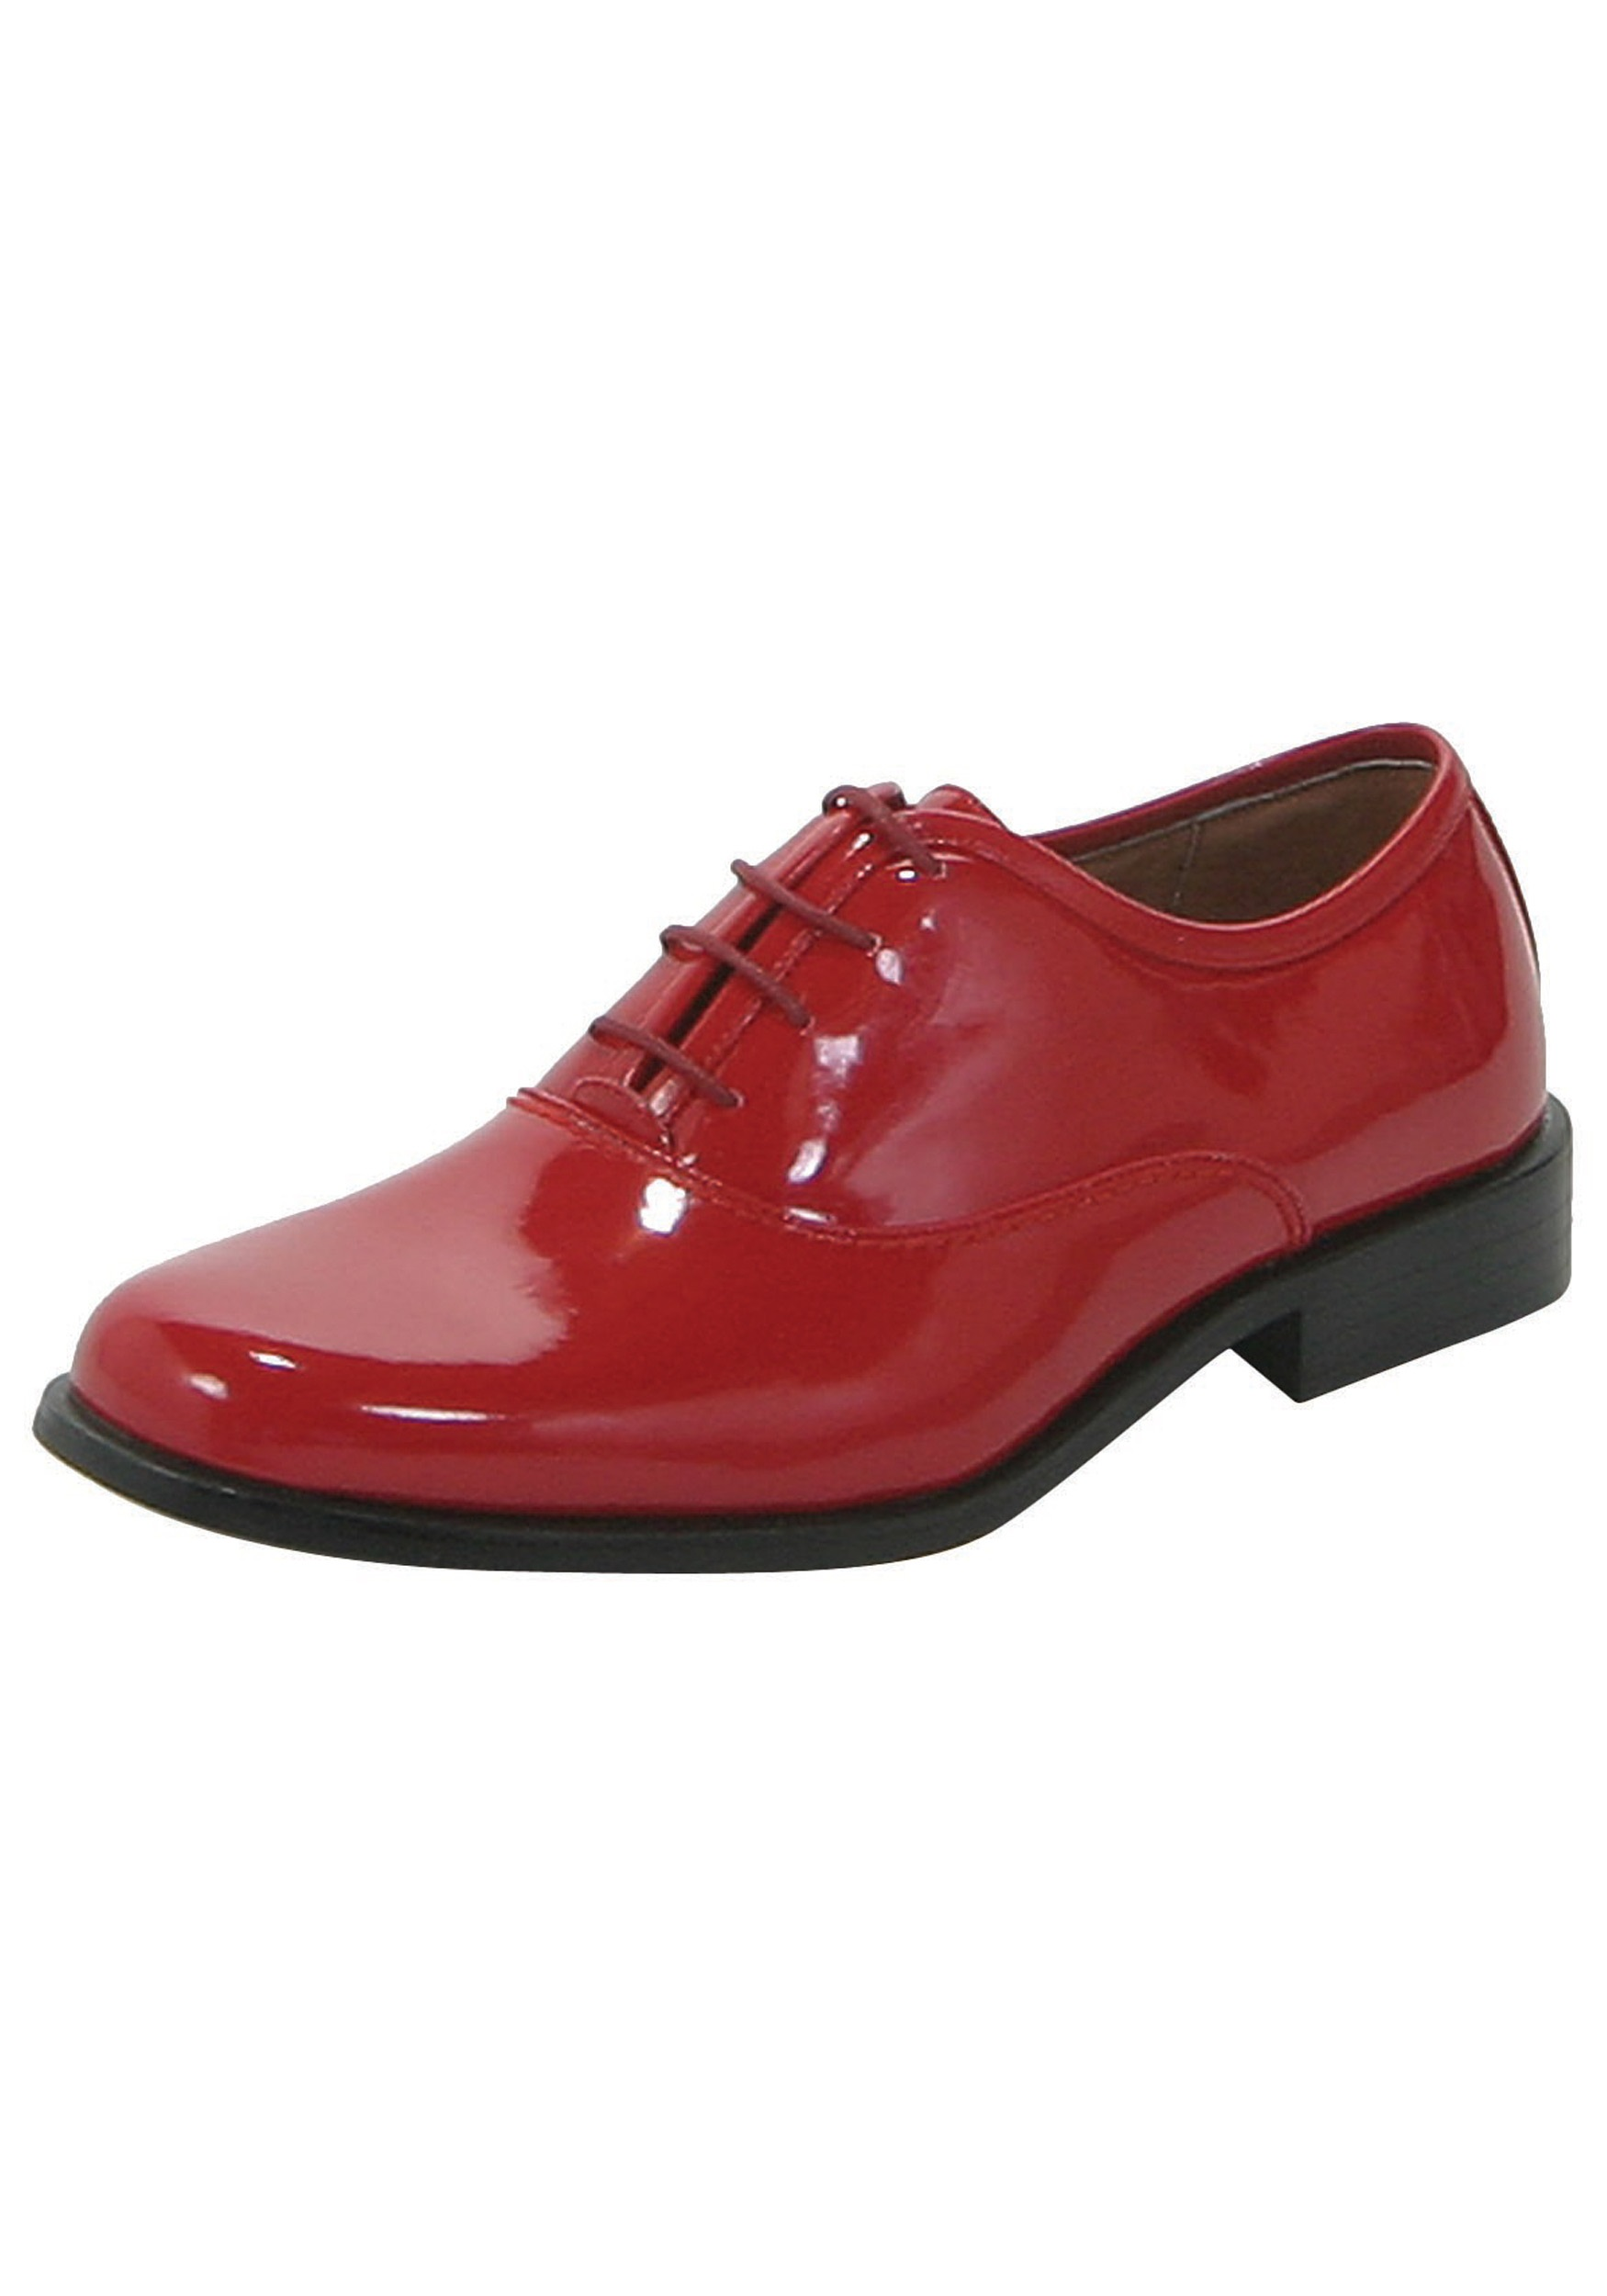 Red Tuxedo Shoes Dumb and Dumber